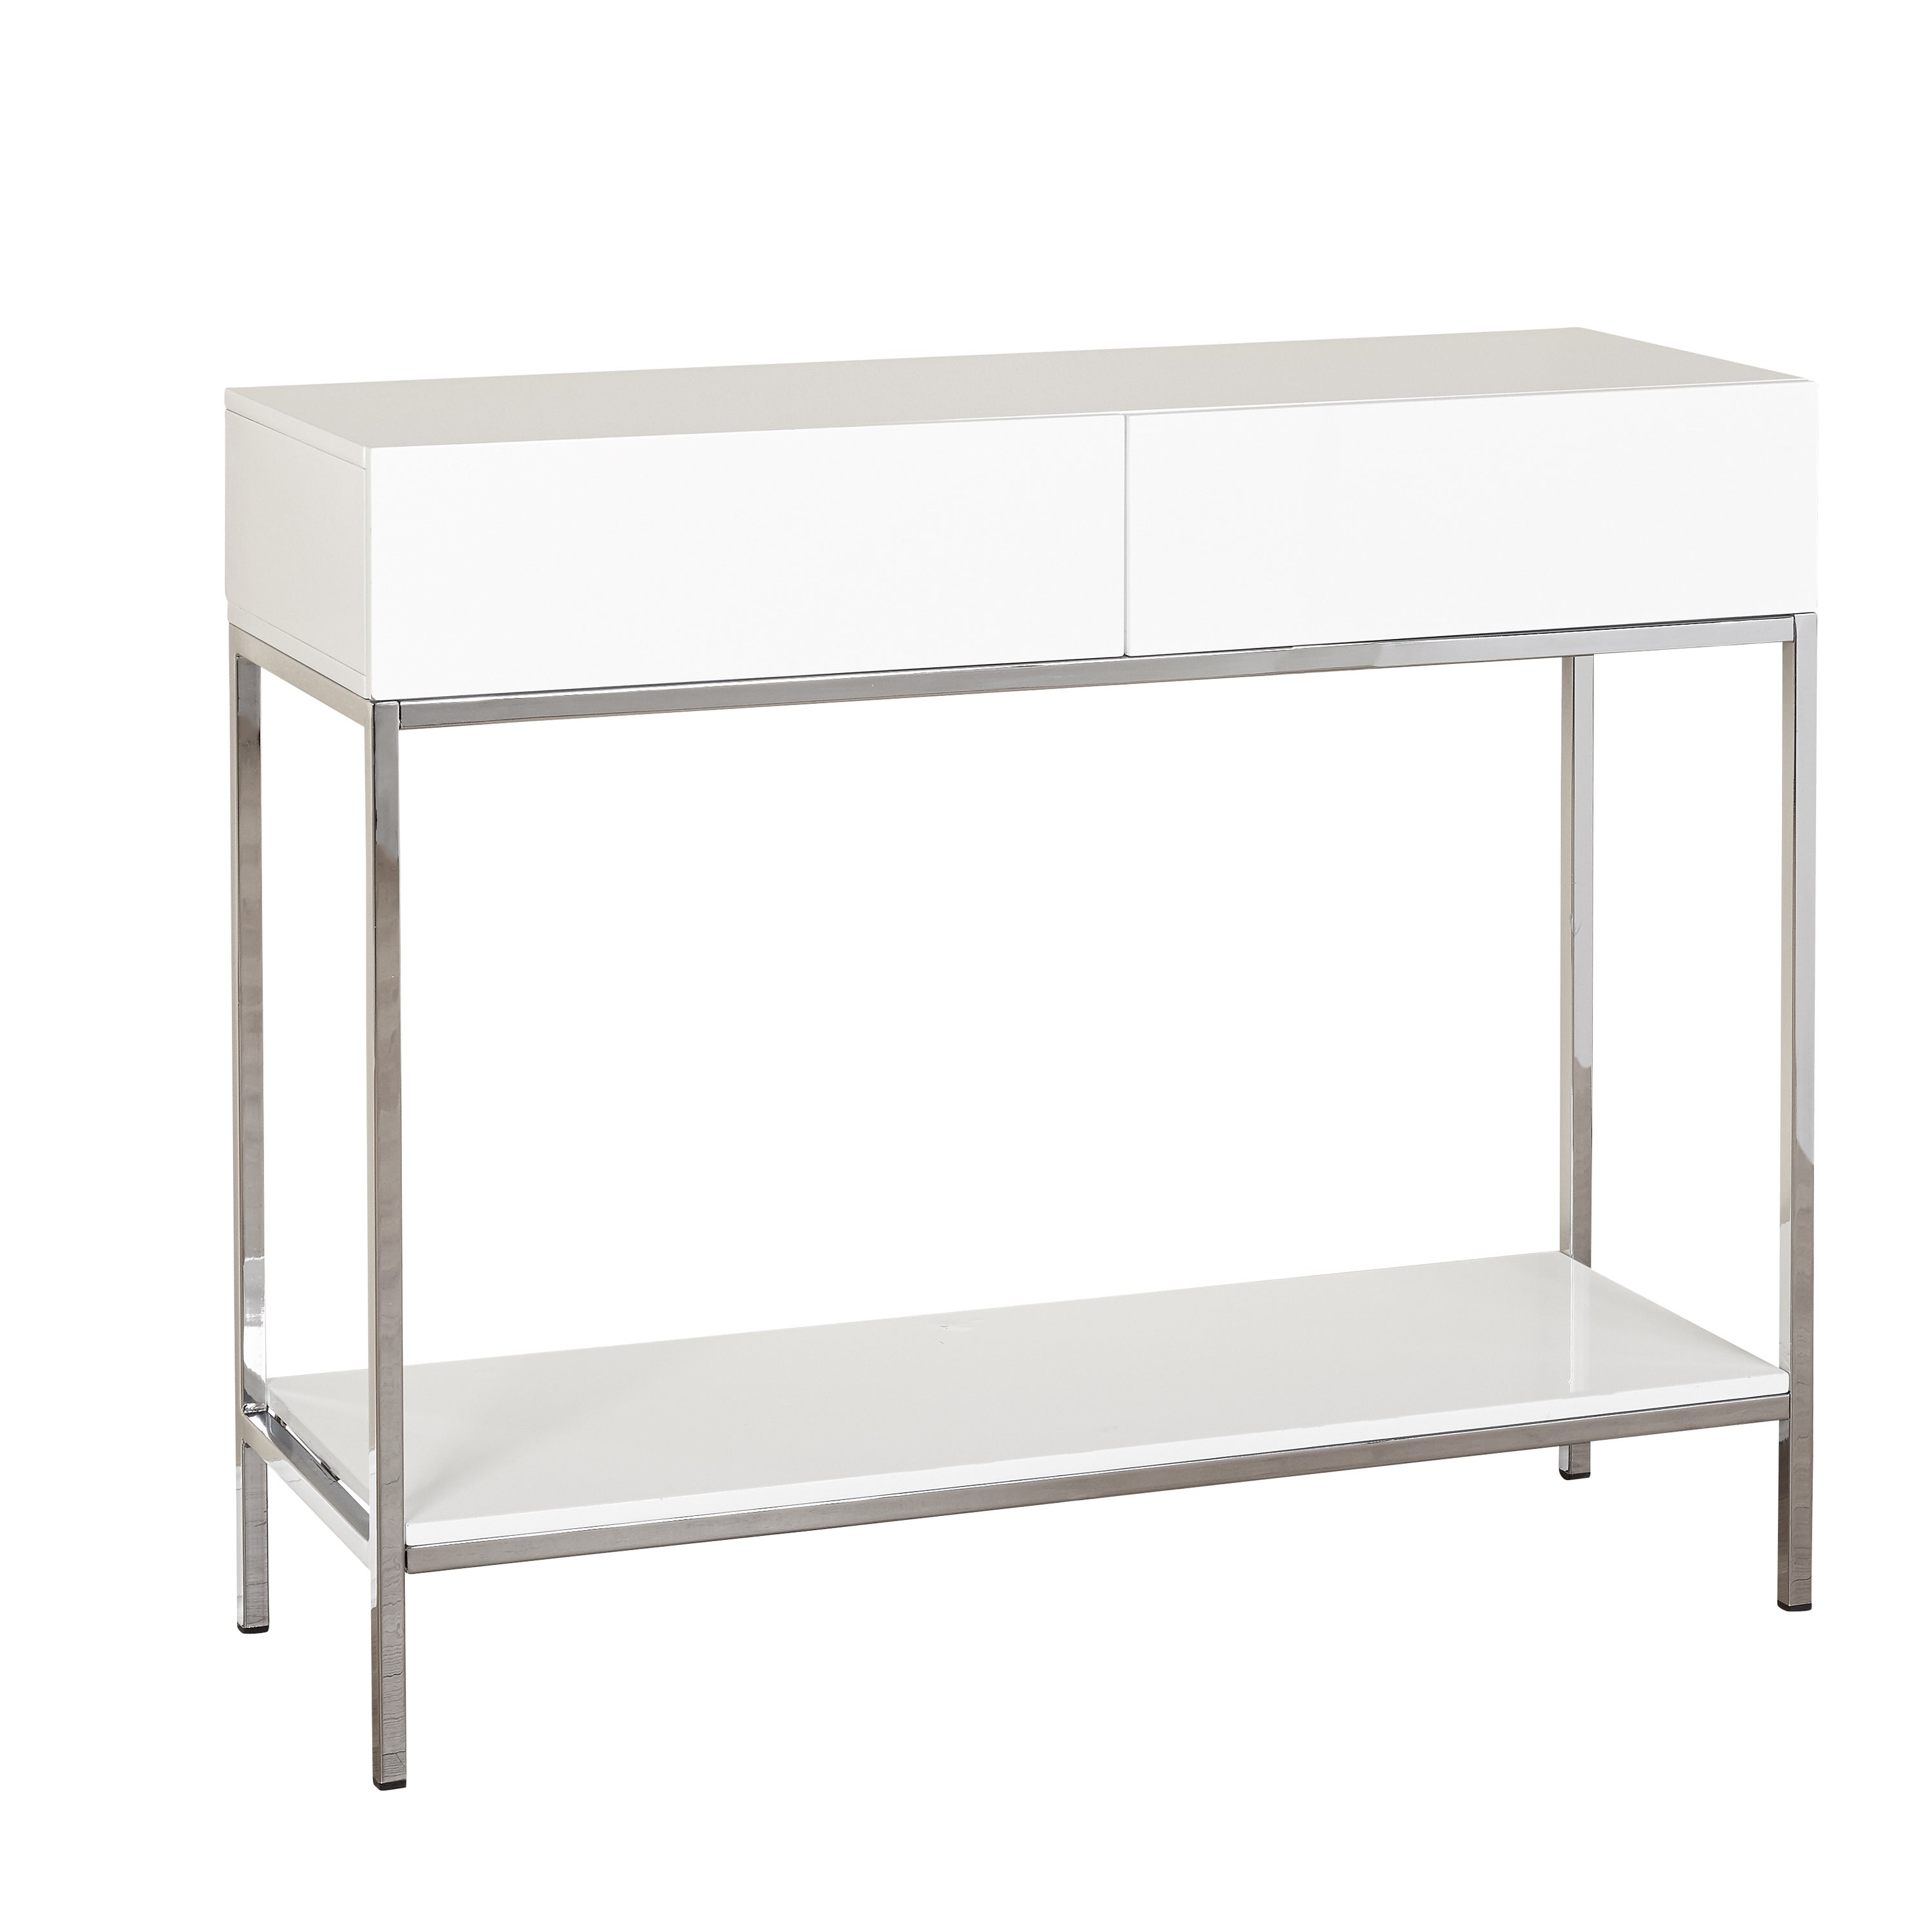 Simple Living White Wood And Chrome Metal High Gloss Console Table Pertaining To White Wood And Chrome Metal High Gloss Buffets (View 2 of 20)